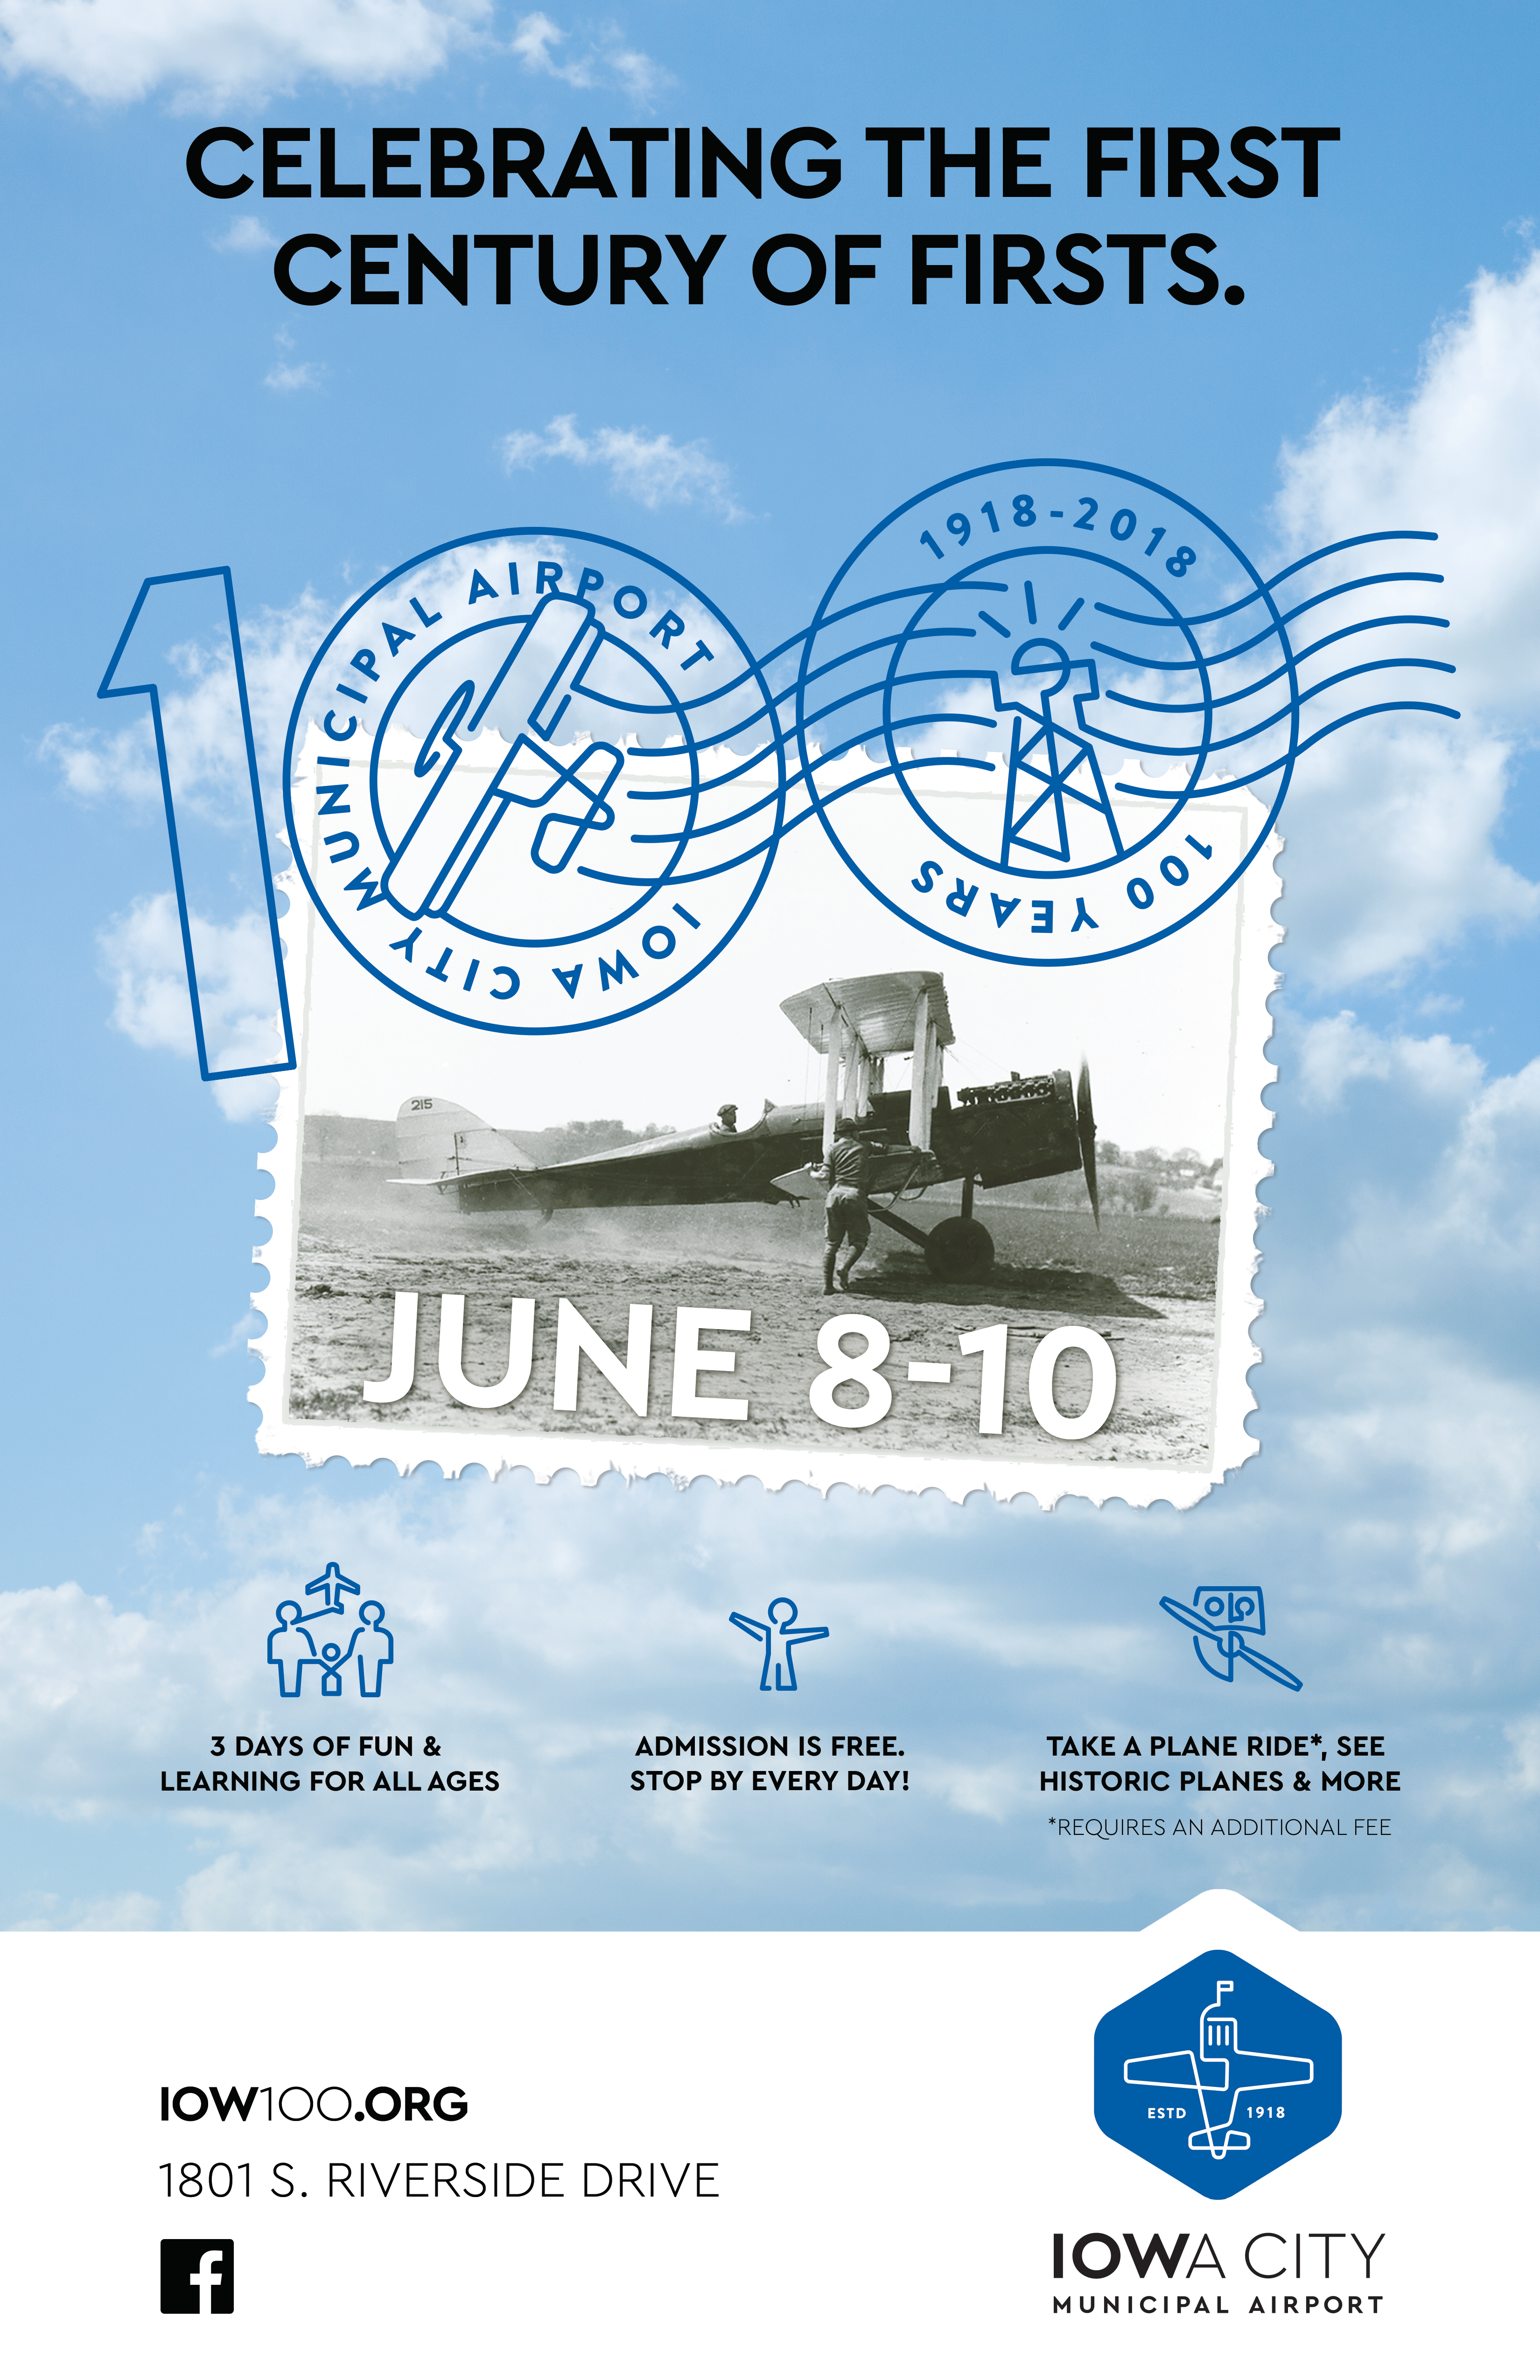 A poster promoting the airport anniversary